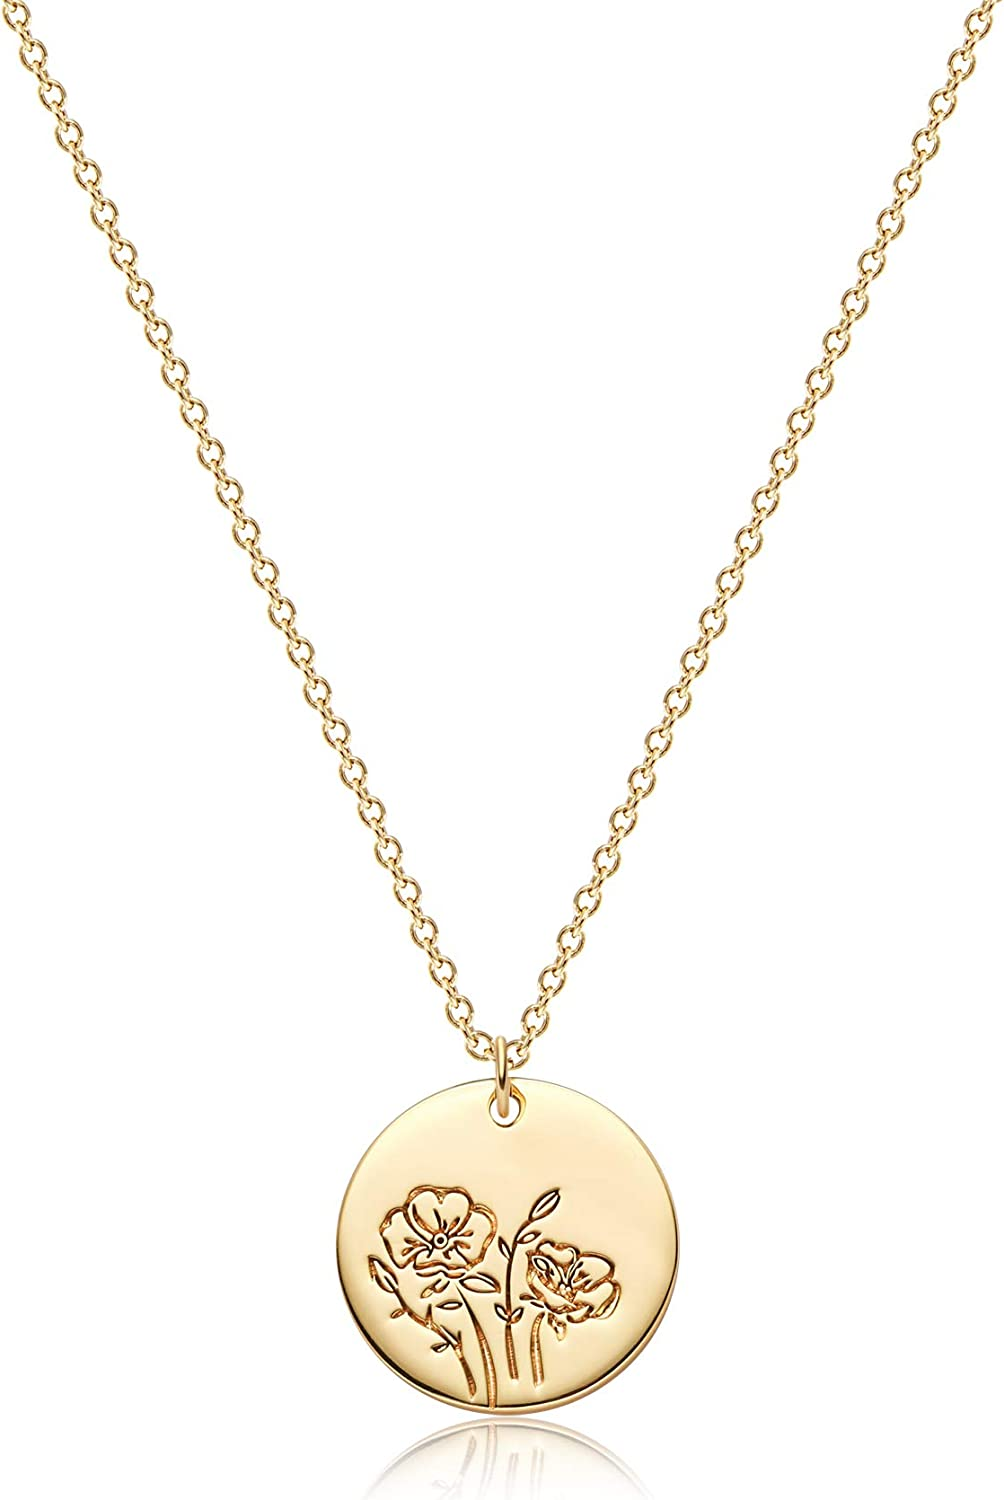 BENEIGE Birth Flower Pendant Necklace for Women 14K Gold Plated Month Floral Chain Necklace Disc Pendant Necklace Dainty Flower Round Custom Necklace for Her